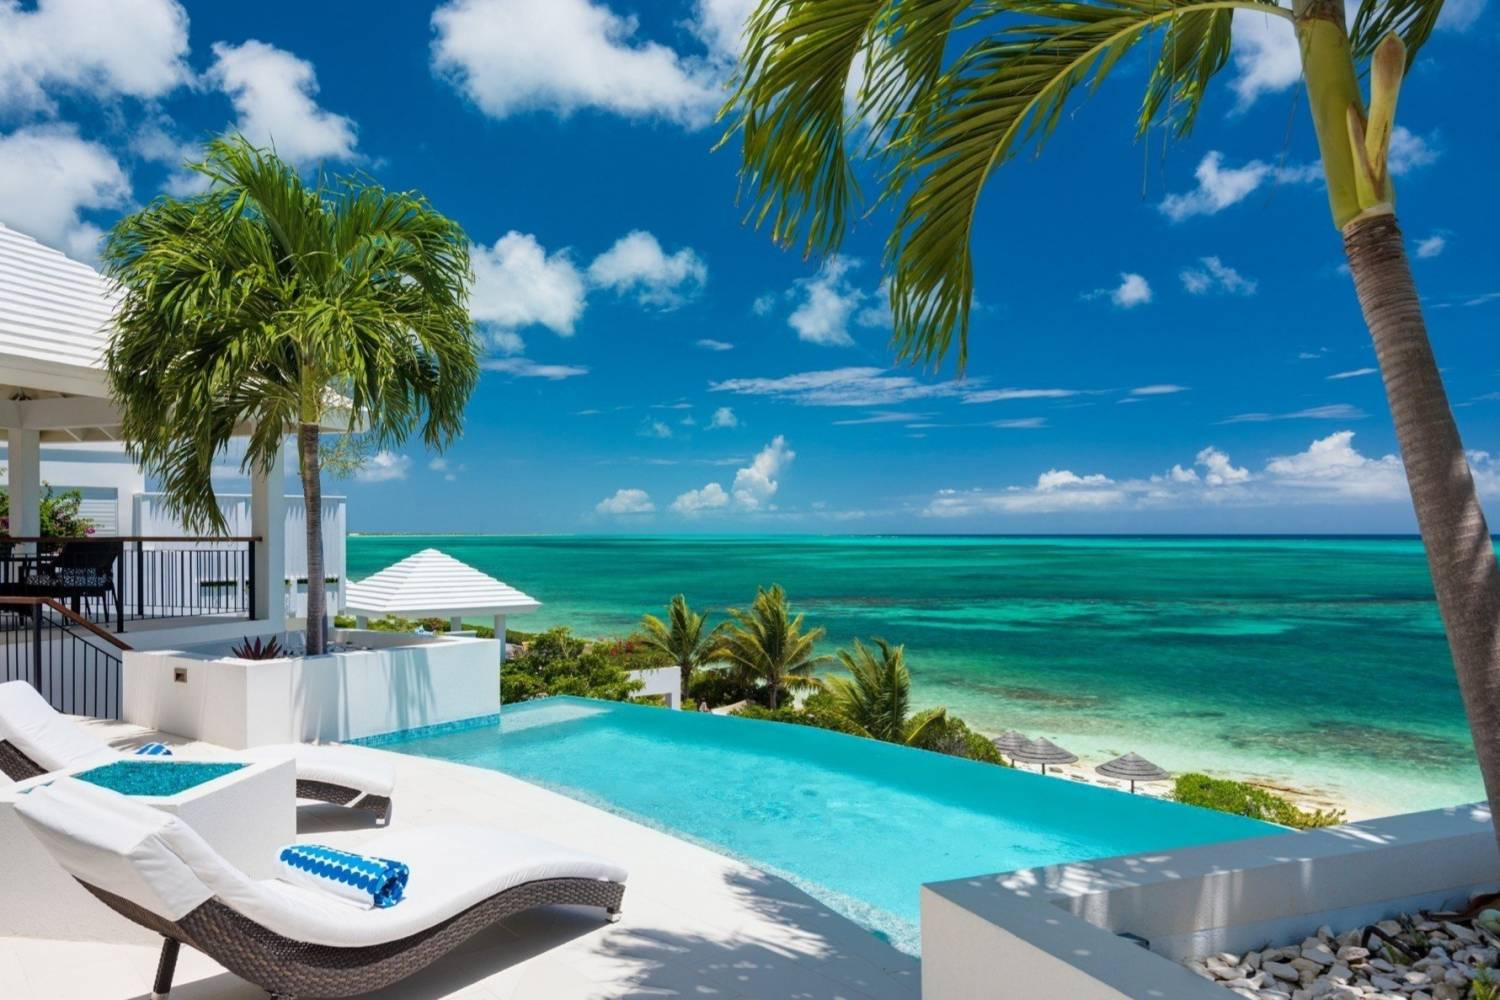 Experience Thompson Cove, Turks and Caicos to the fullest. Book a Private Chef through Take a Chef now!, header